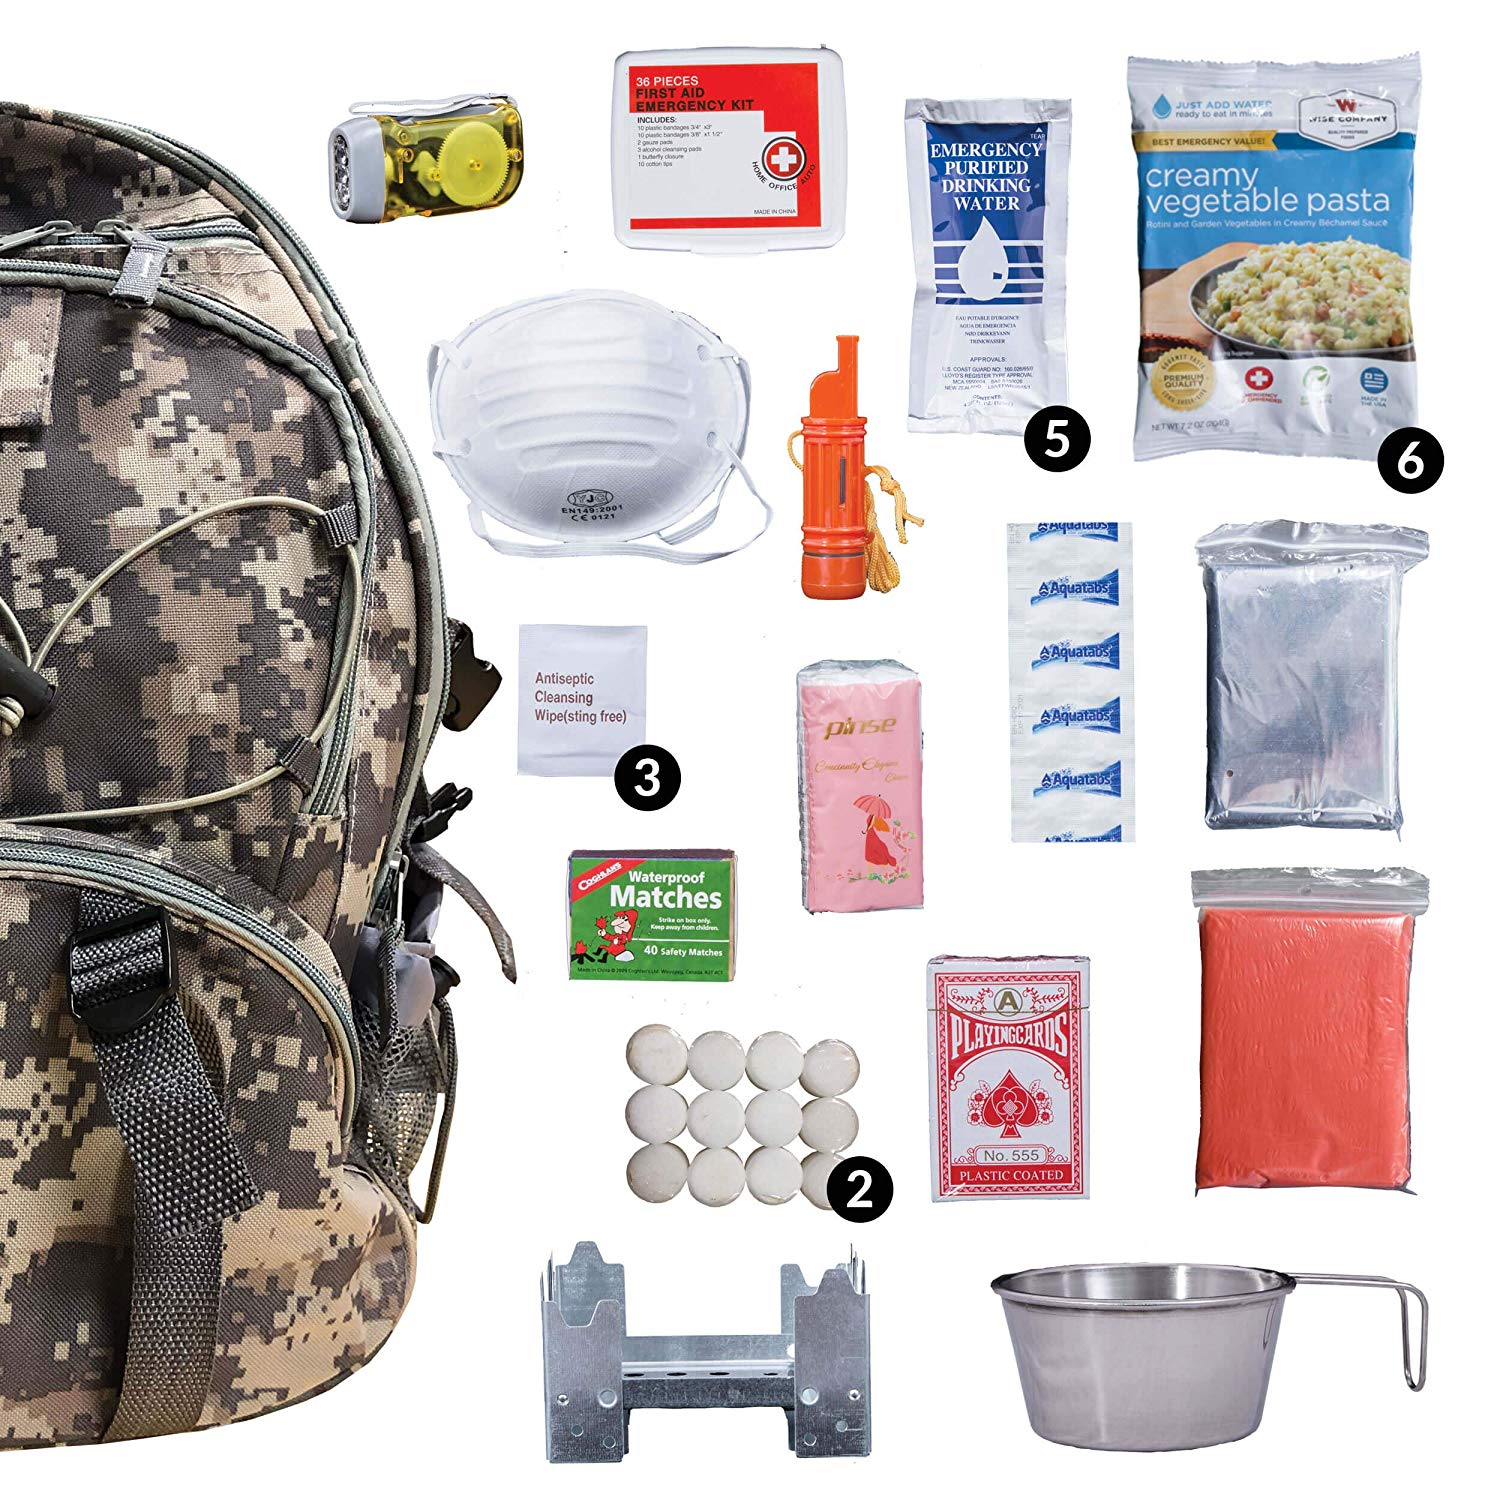 Review of Wise Food Emergency Survival Backpack Kit, Great Go Bag for Hurricanes, Fires, Earthquakes